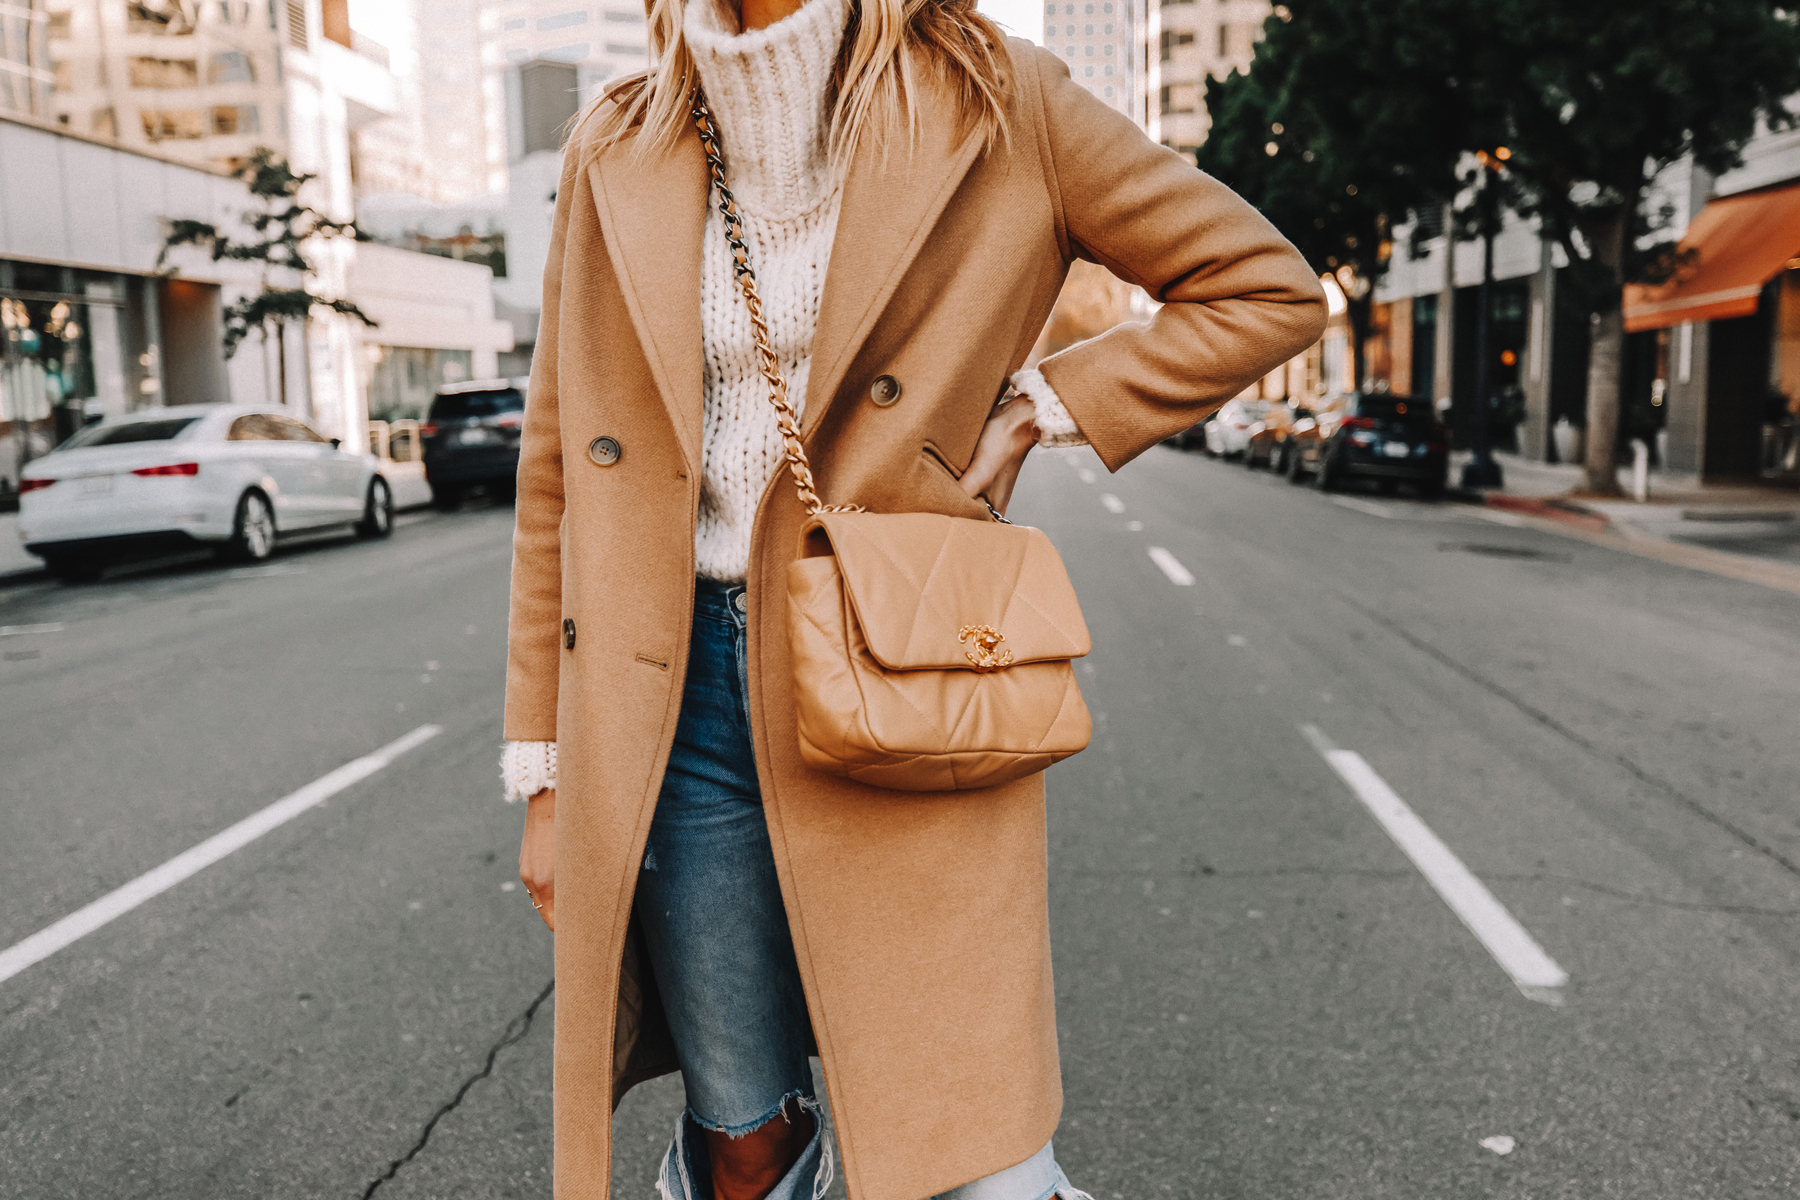 Fashion Jackson Wearing Everlane Camel Coat White Chunky Sweater Ripped Jeans Chanel 19 Small Beige Handbag